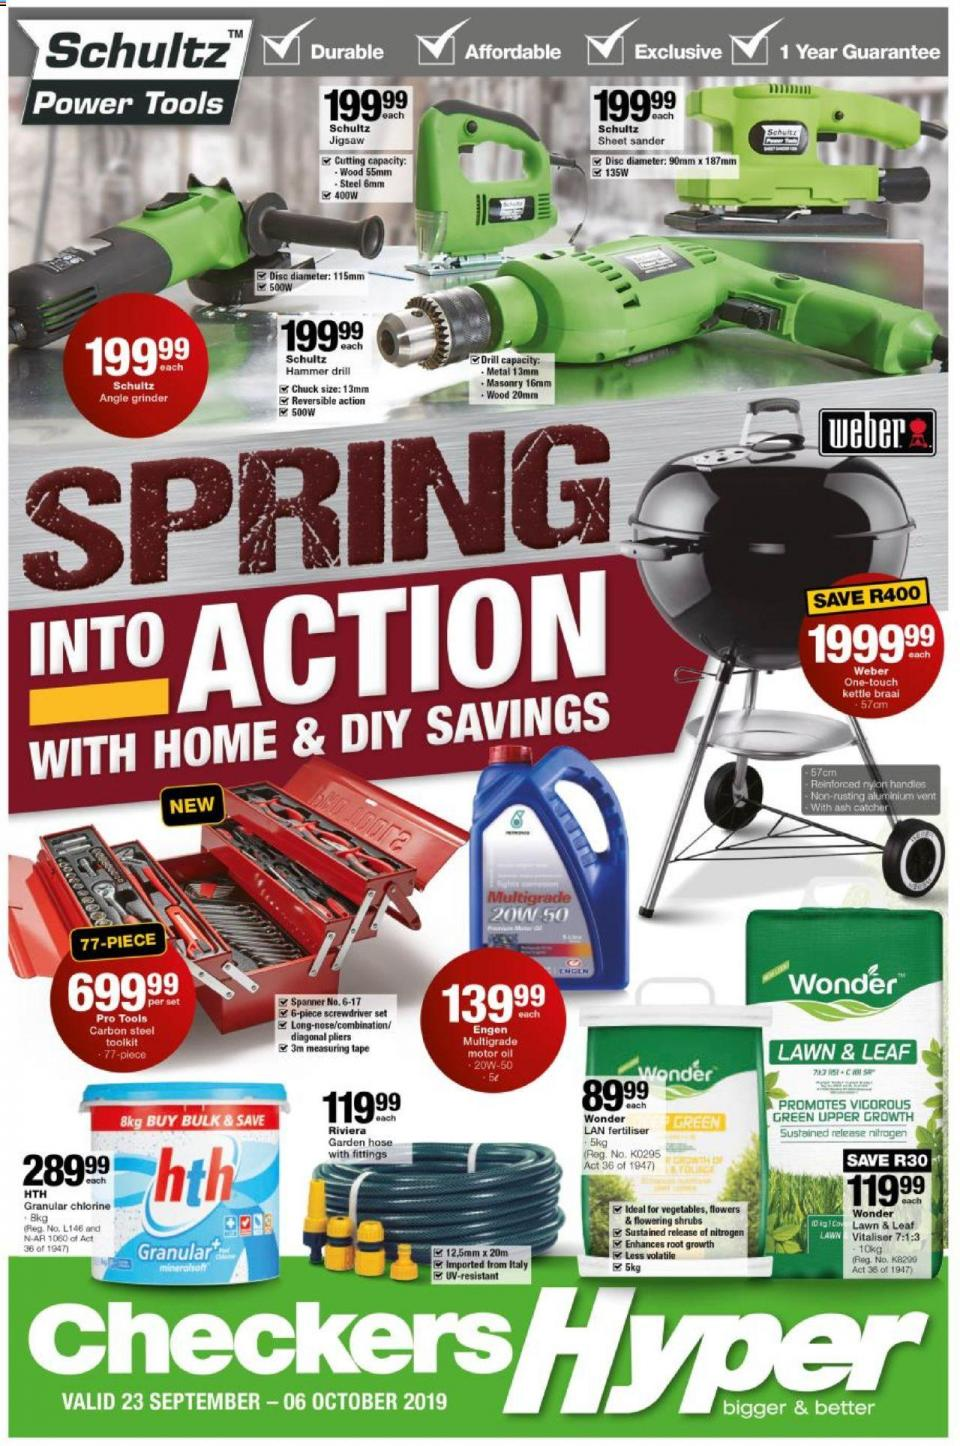 checkers specials hyper spring promotion 23 september 2019